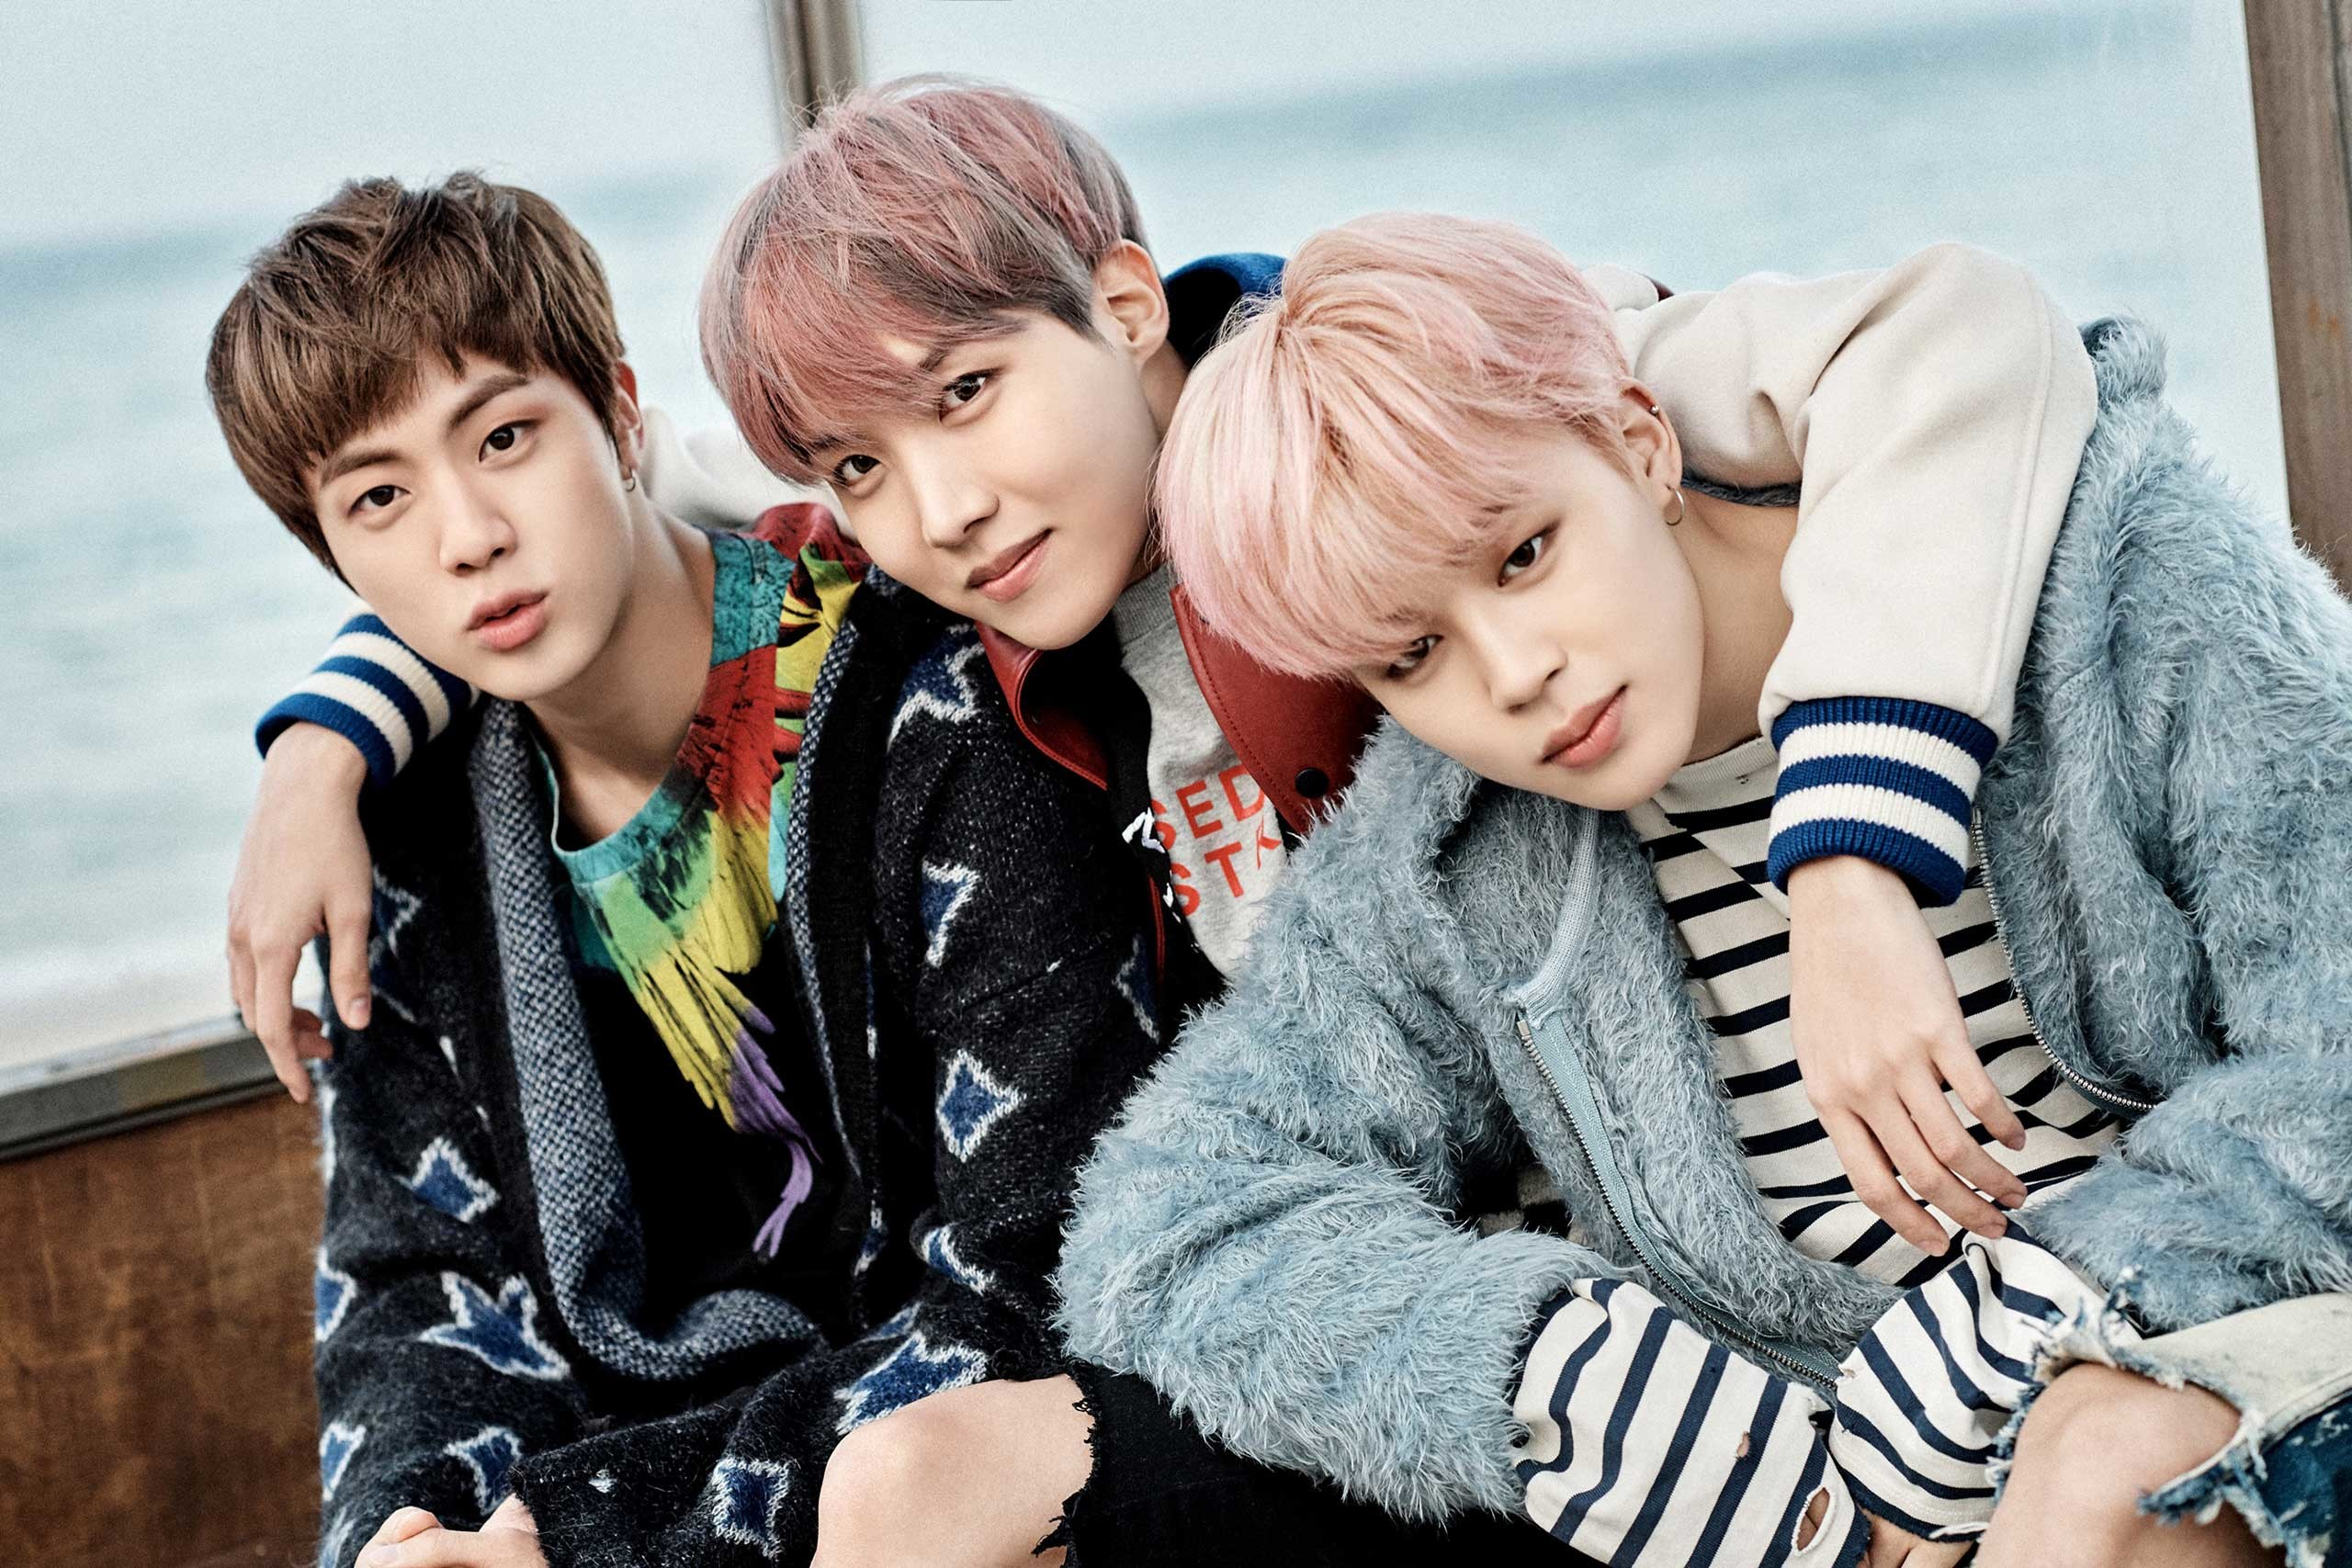 [Picture] BTS' 'WINGS: You Never Walk Alone' Concept Photo 2 [170203]